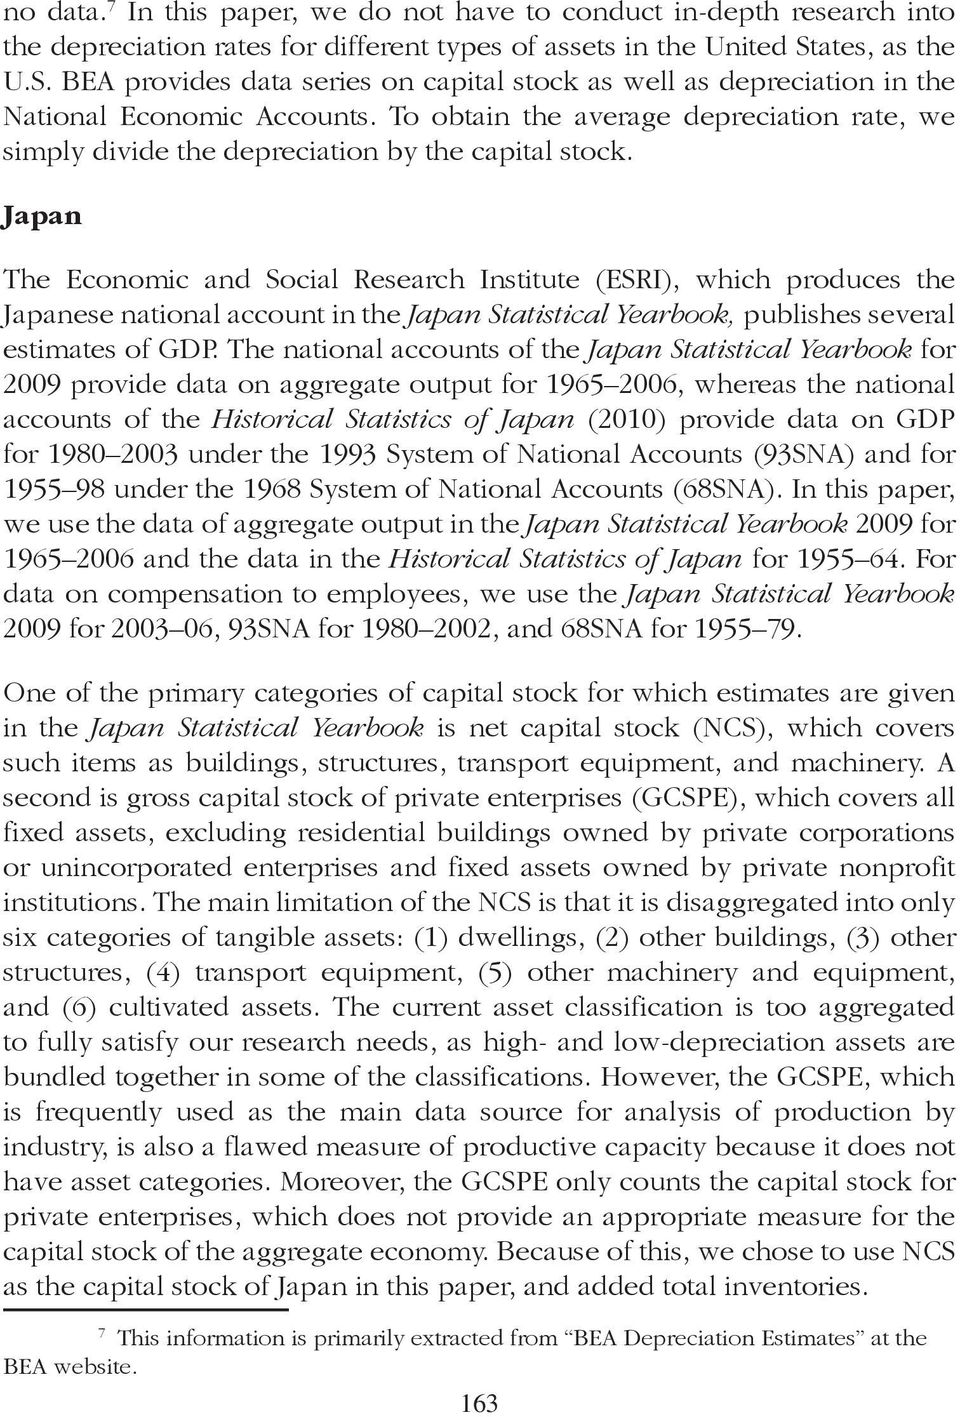 Japan The Economic and Social Research Insiue (ESRI), which produces he Japanese naional accoun in he Japan Saisical Yearbook, publishes several esimaes of GDP.